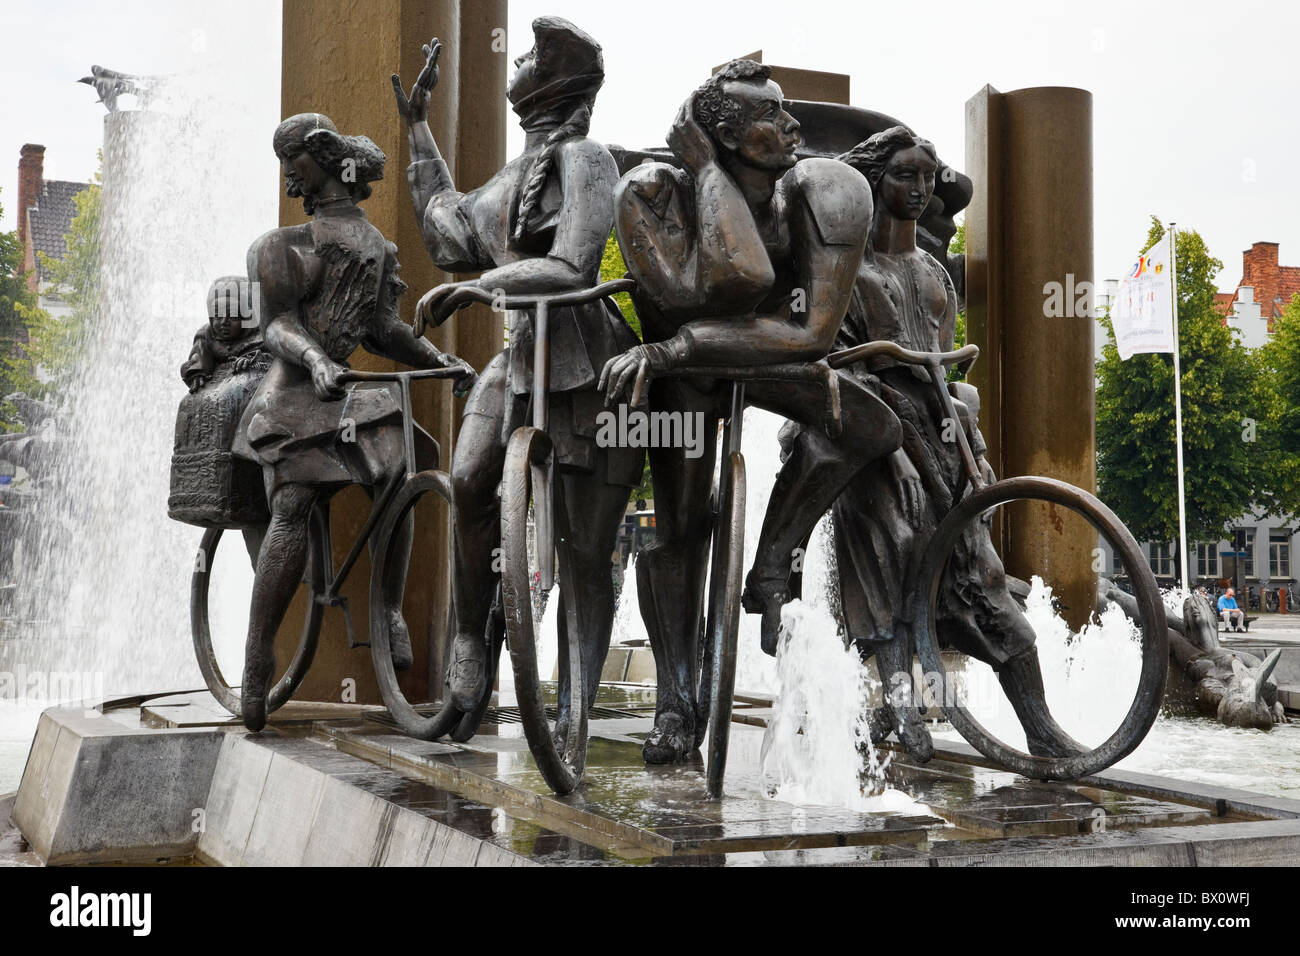 Het Zand, Bruges, East Flanders, Belgium, Europe. Fountain and sculptures depicting cyclists - Stock Image